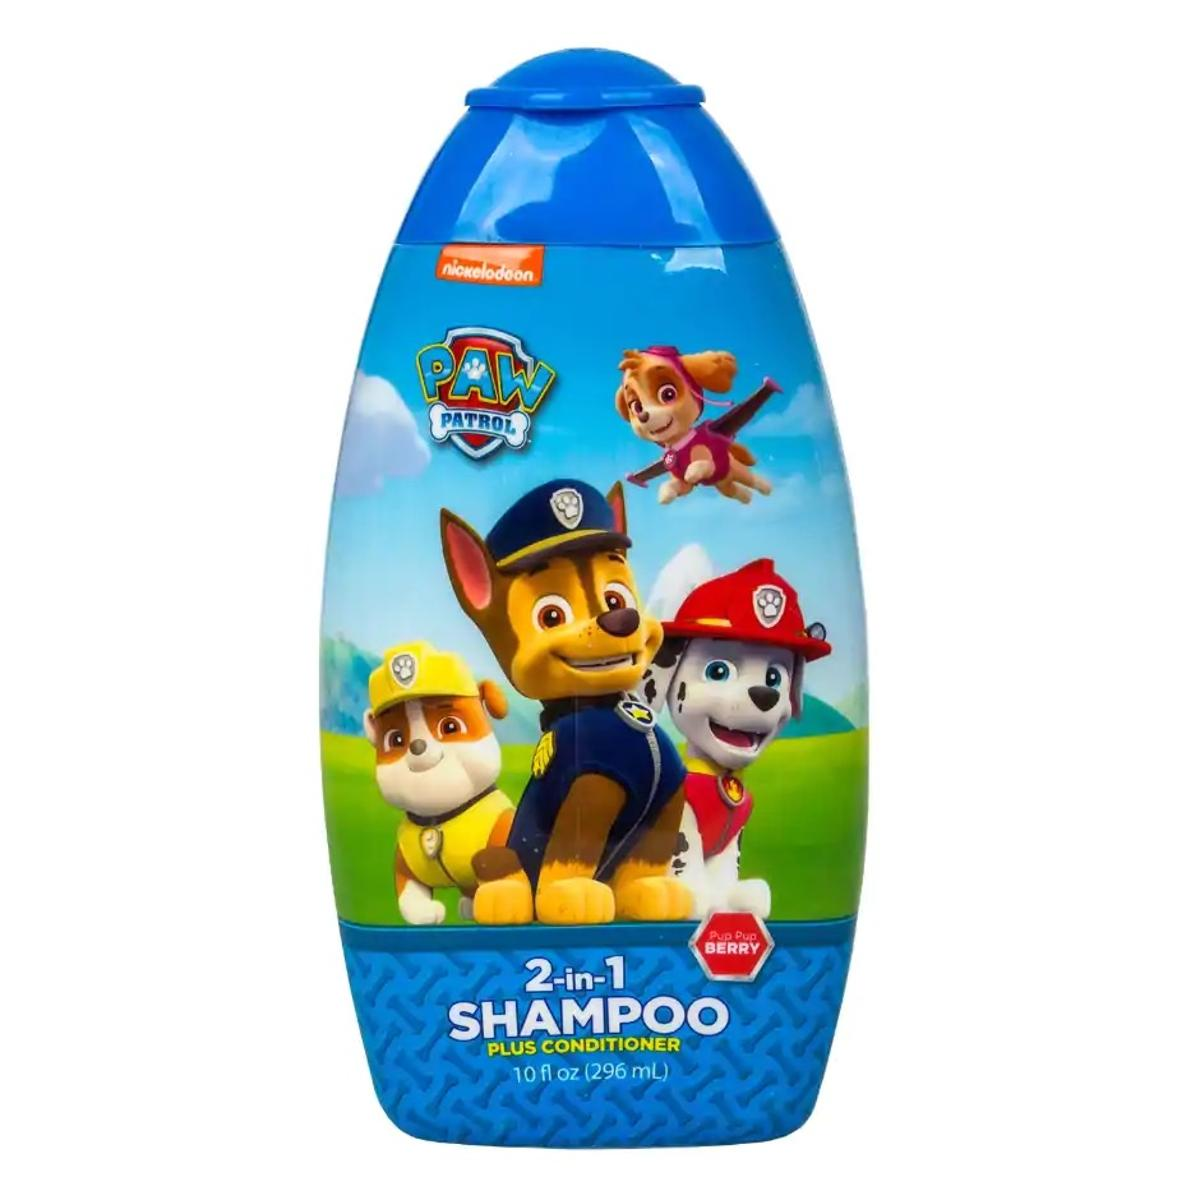 Paw Patrol 2-in-1 Shampoo Plus Conditioner